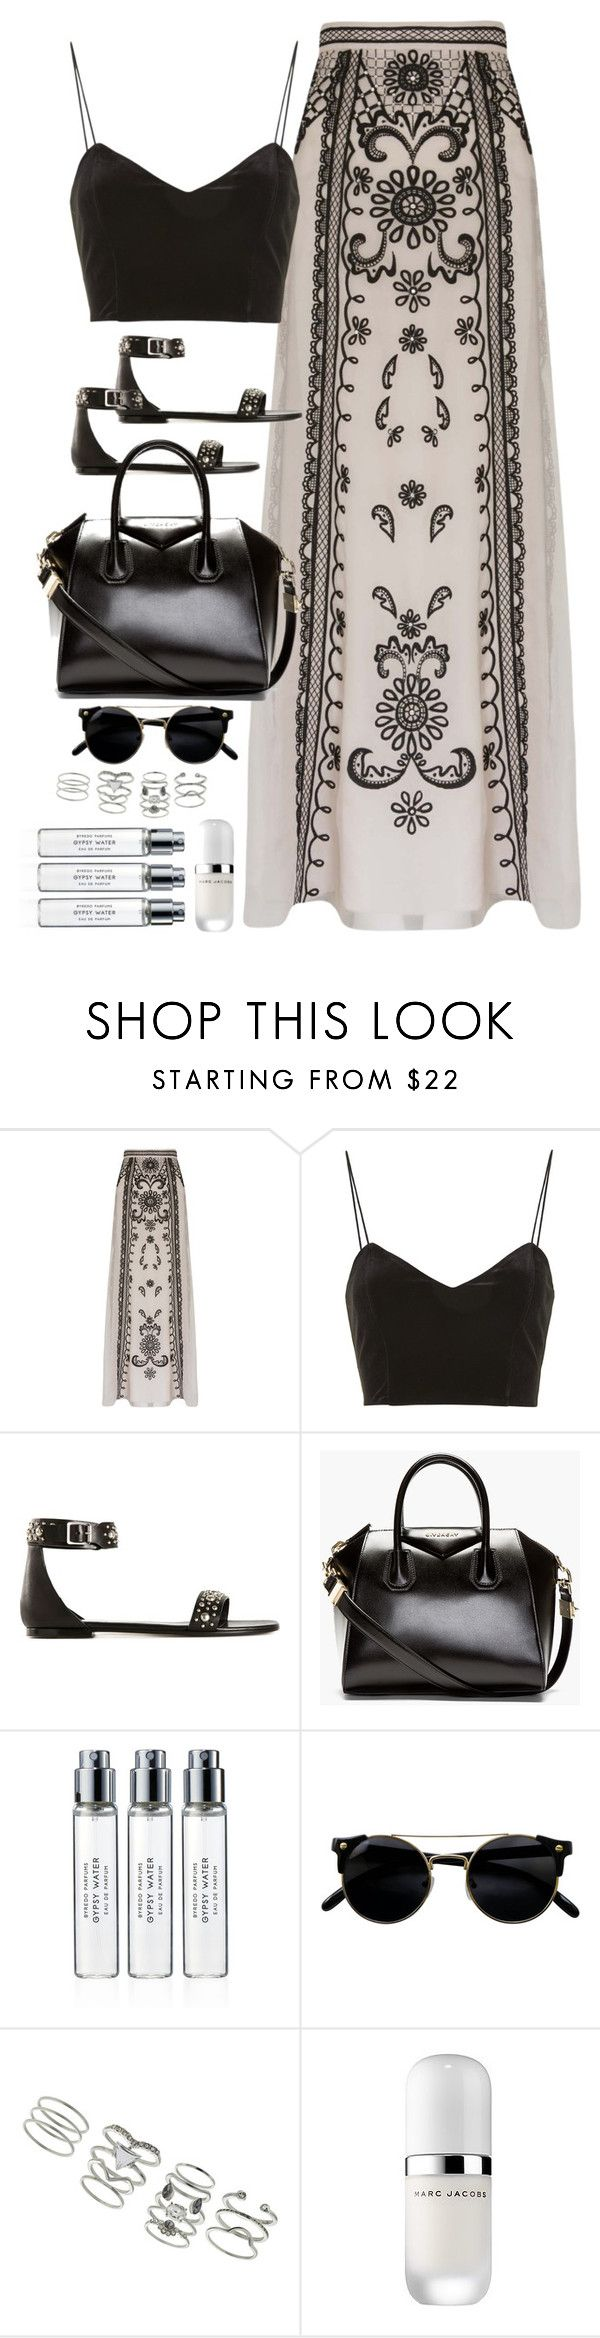 """""""Untitled#4443"""" by fashionnfacts ❤ liked on Polyvore featuring Temperley London, Topshop, Yves Saint Laurent, Givenchy, Byredo, Miss Selfridge and Marc Jacobs"""